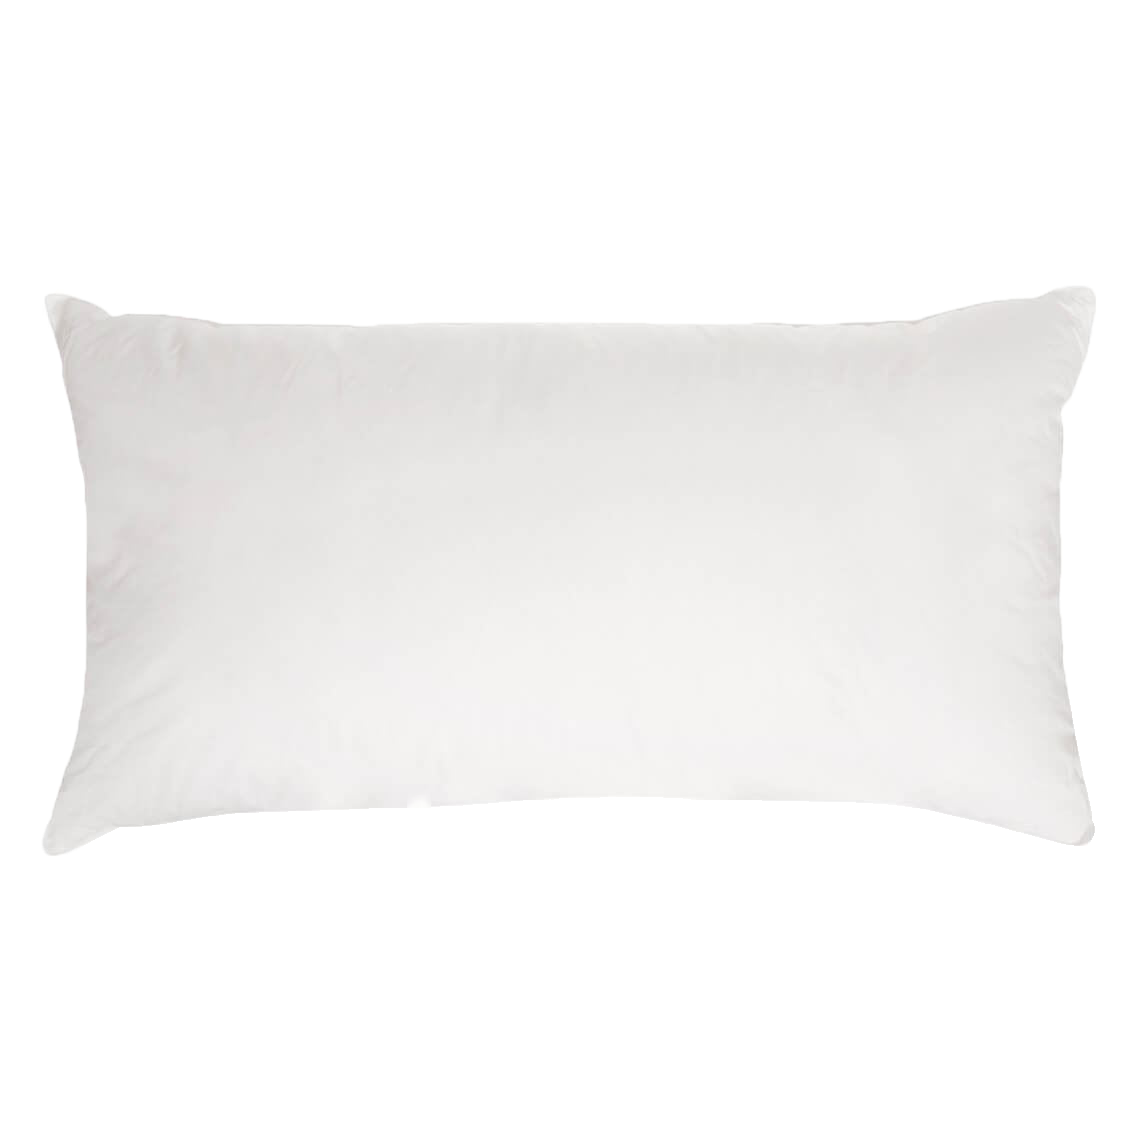 39137 Popular Category - Deep etches_Pillows.png